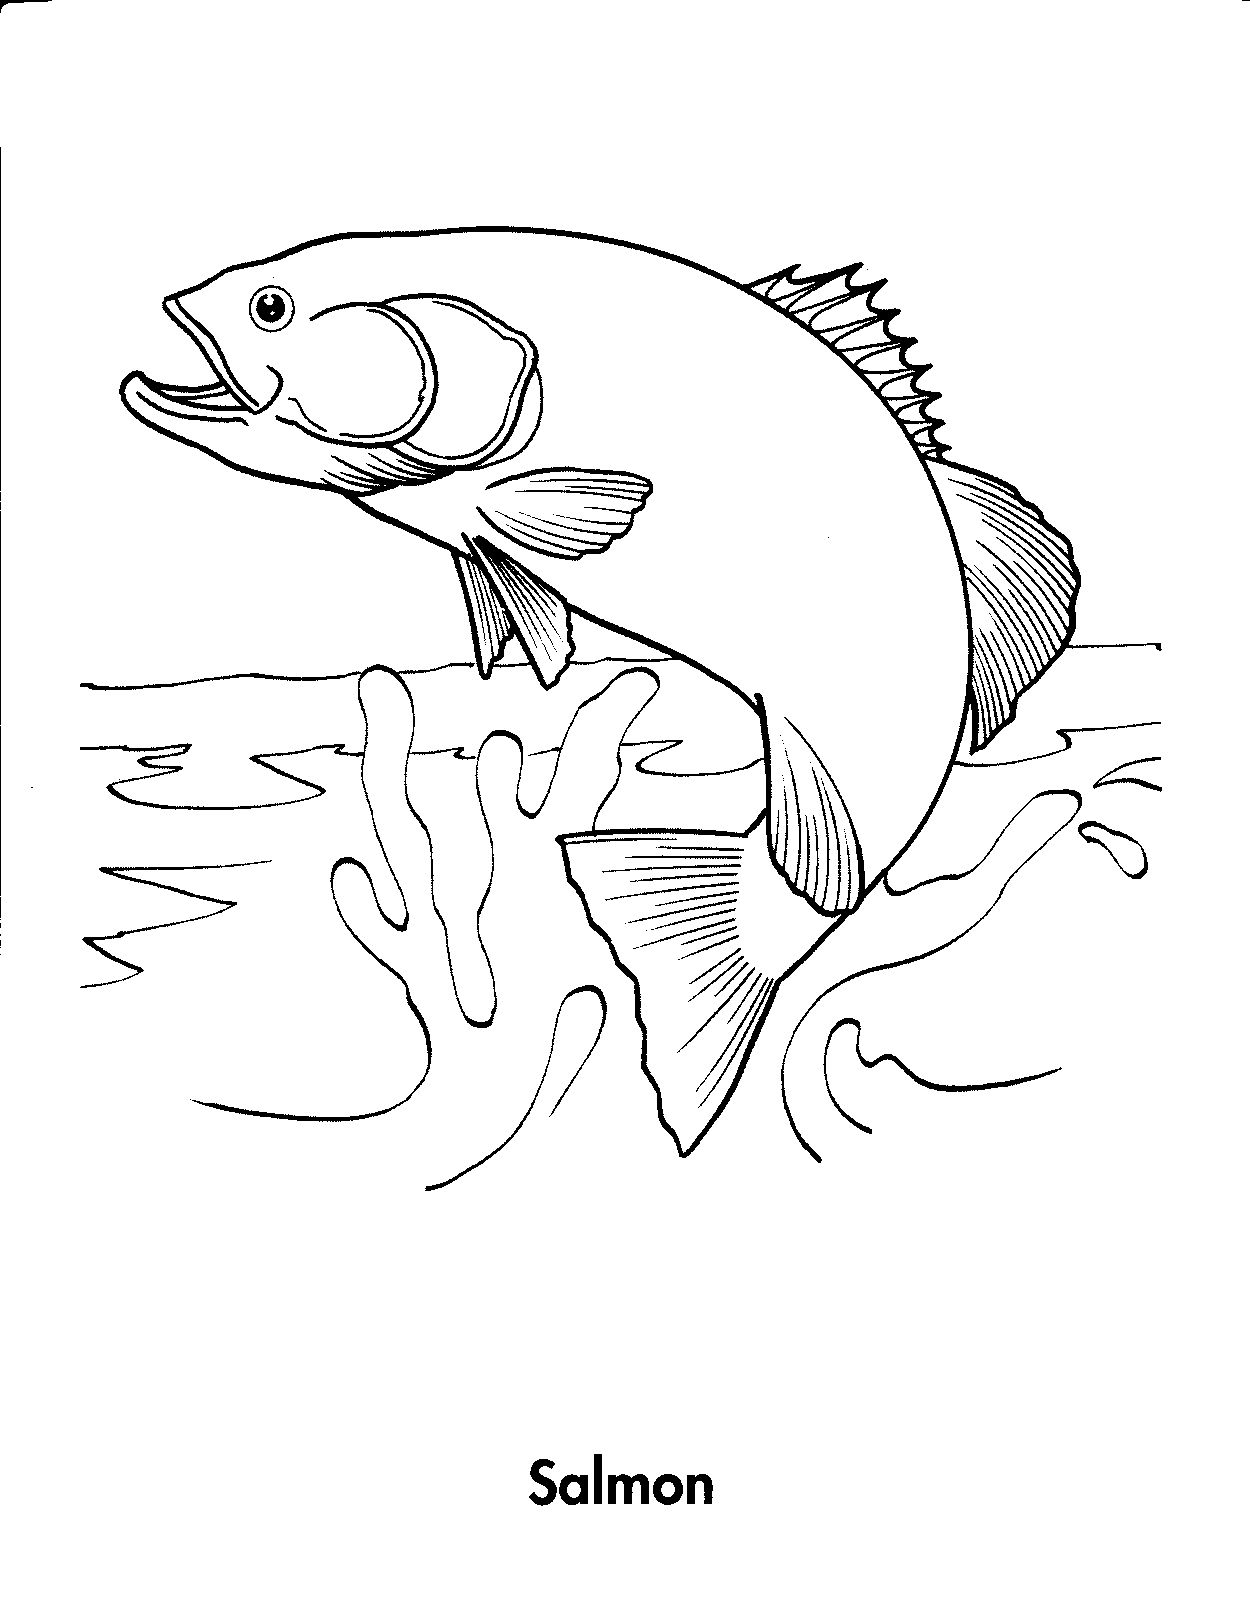 Coloring Pages For Kids All Kinds Of Images Just For Kids Fish